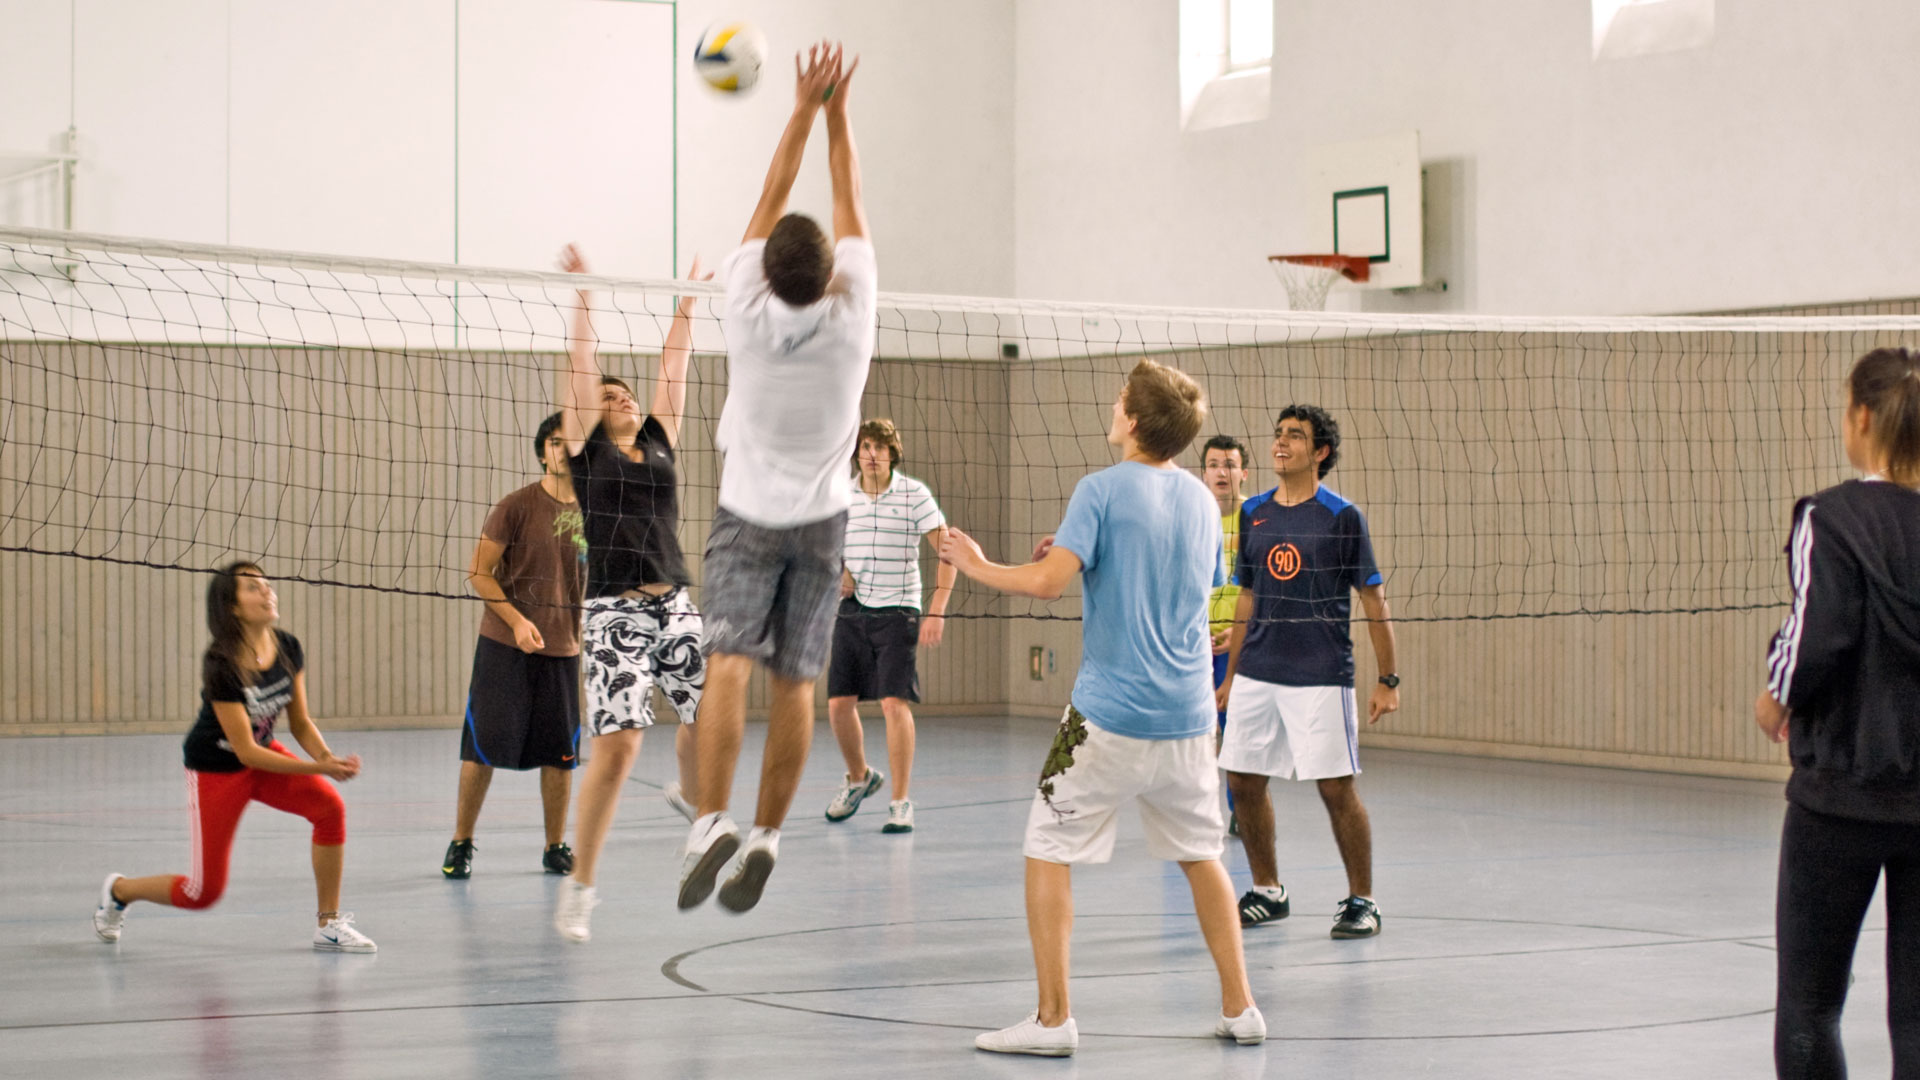 Volleyballspiel in der hauseigenen Turnhalle